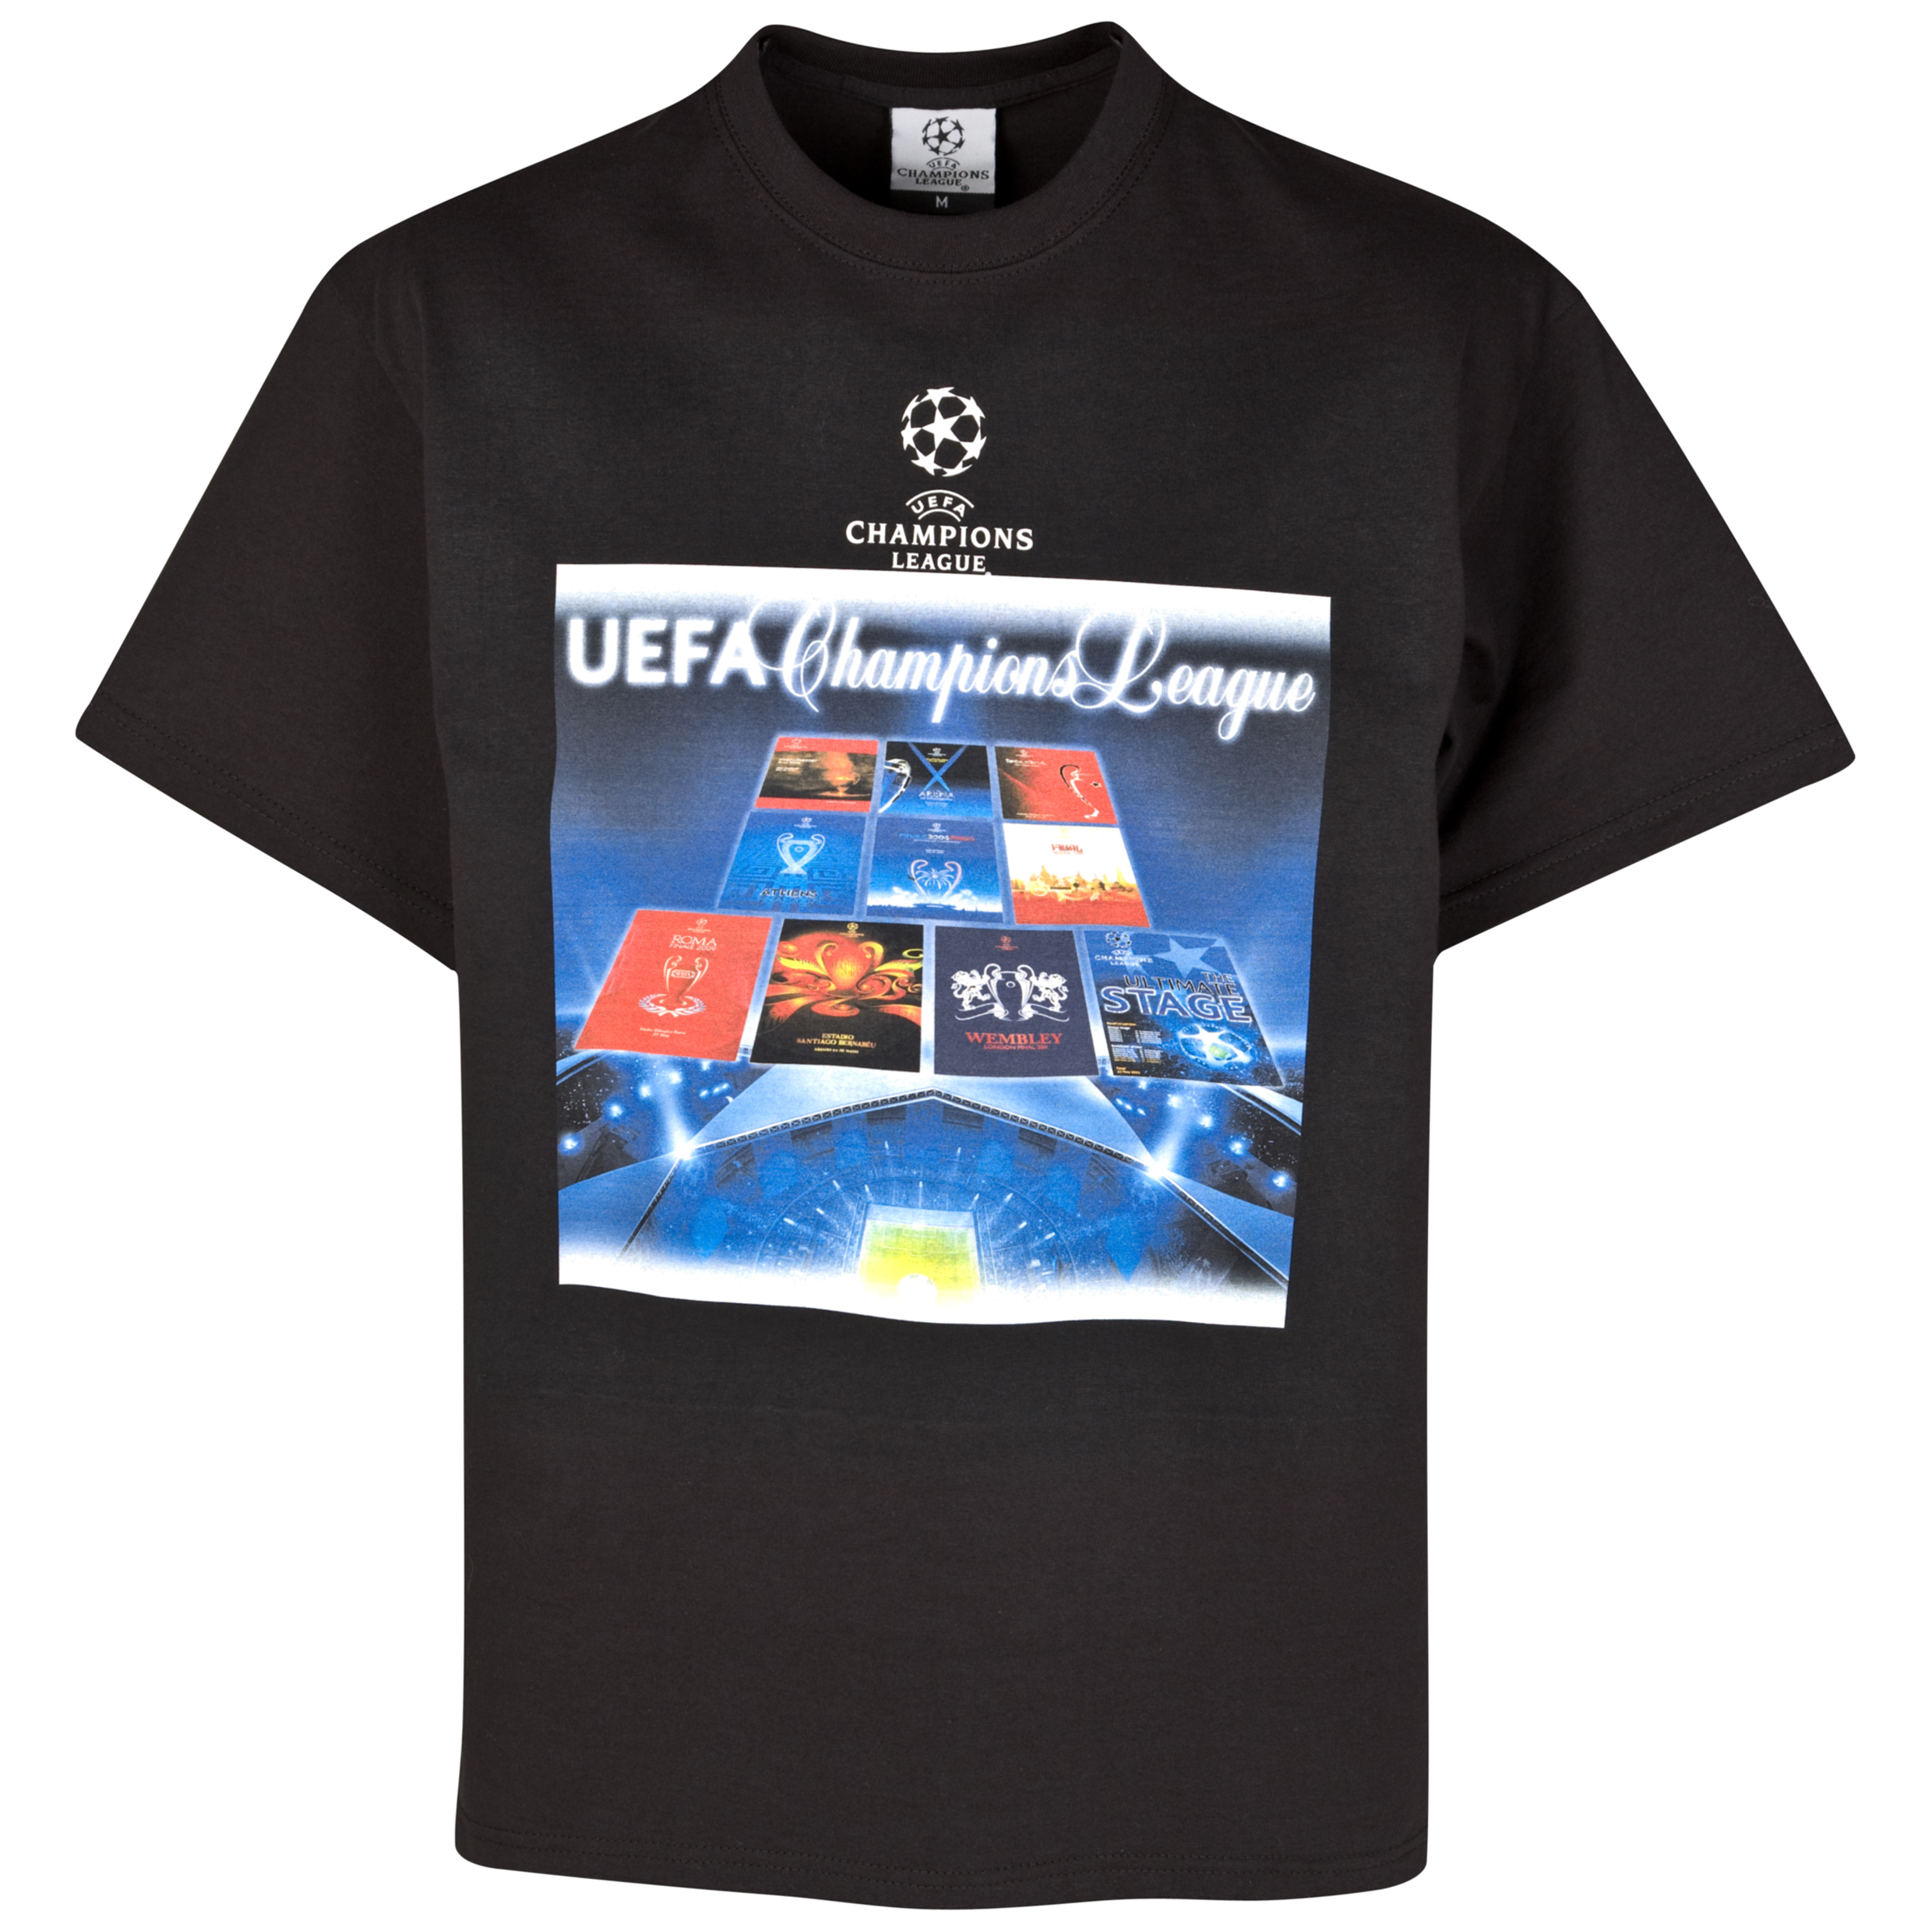 UEFA Champions League Programme T-Shirt - Black